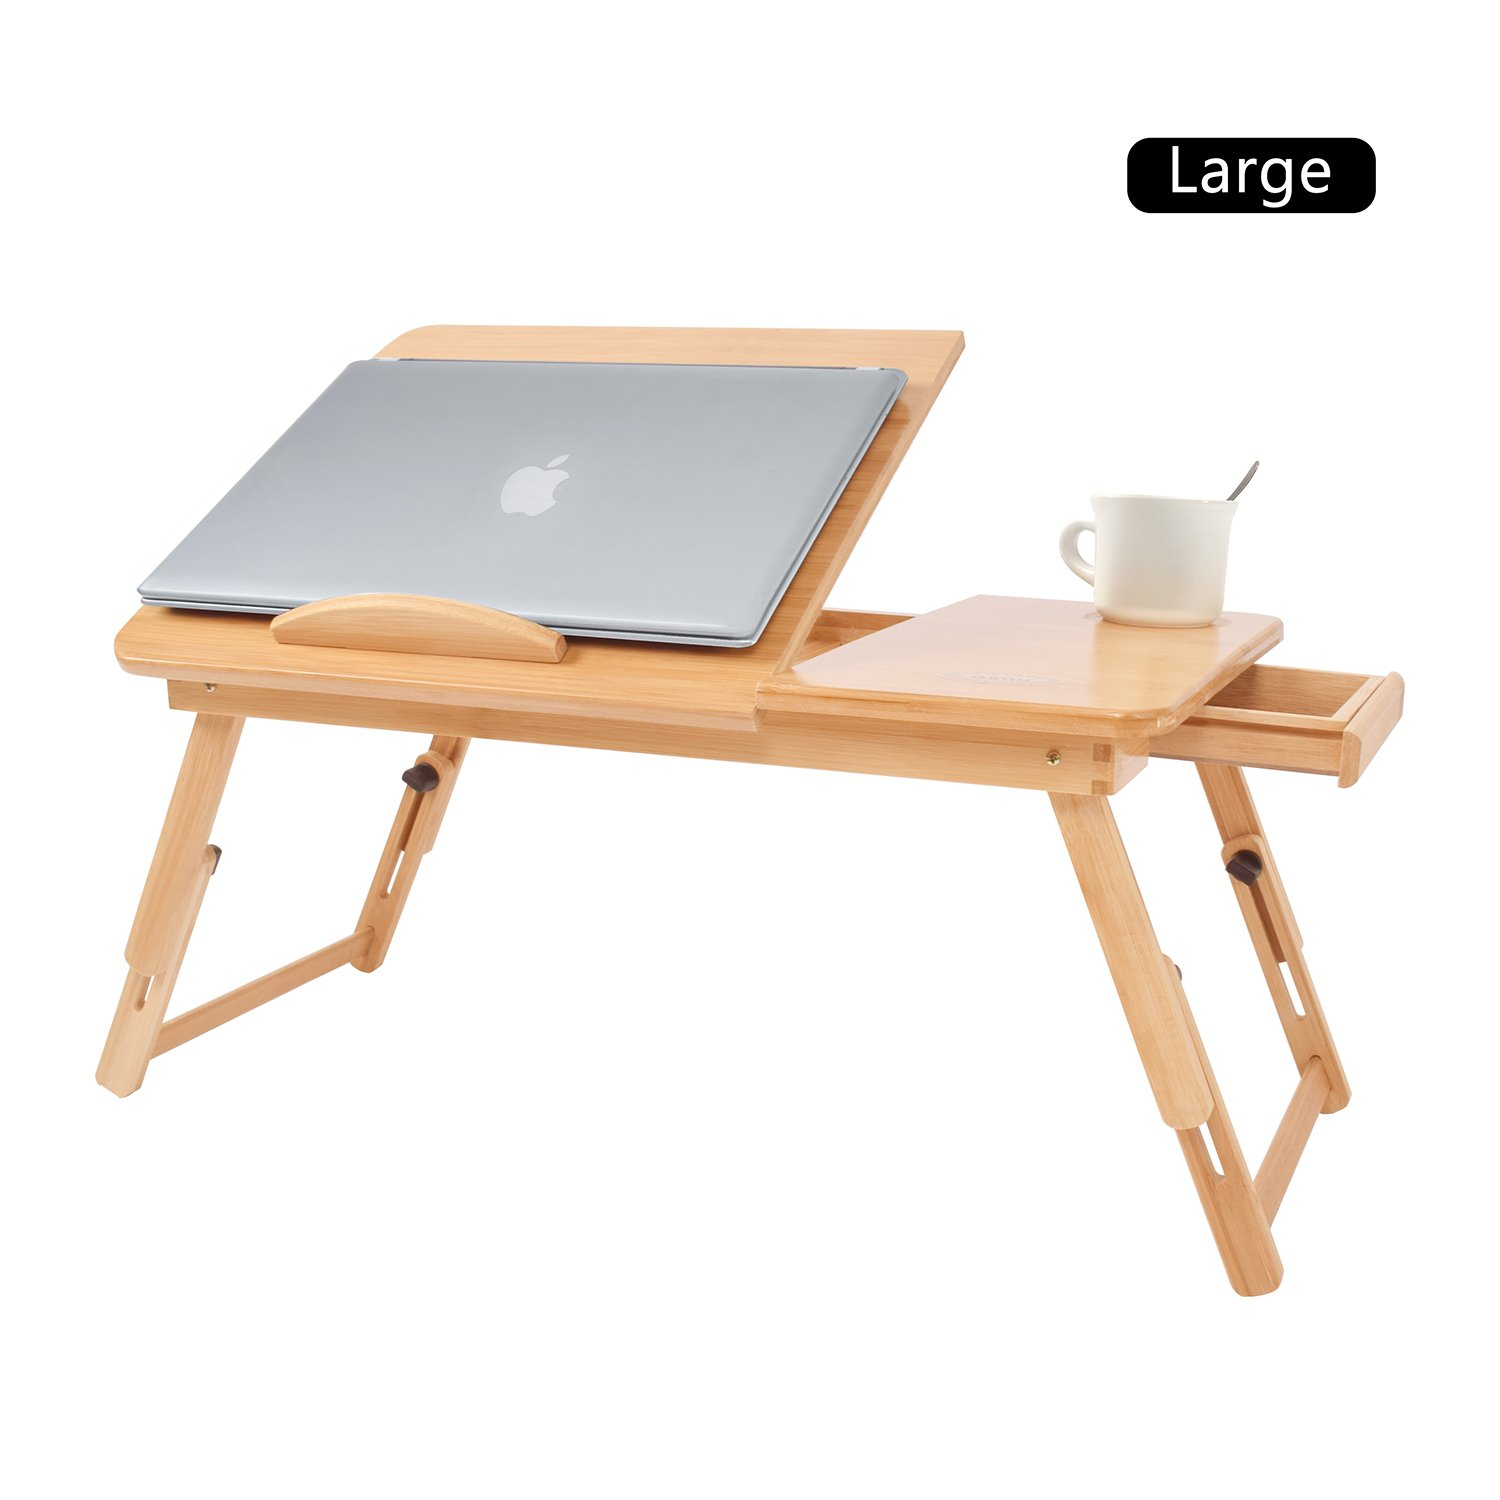 """aimu Portable Bamboo Foldable Laptop Desk Notebook Adjustable Height Tray Table Bed Table with Drawer Best for 17"""" Notebook (Large) JRSY DNZ0001"""